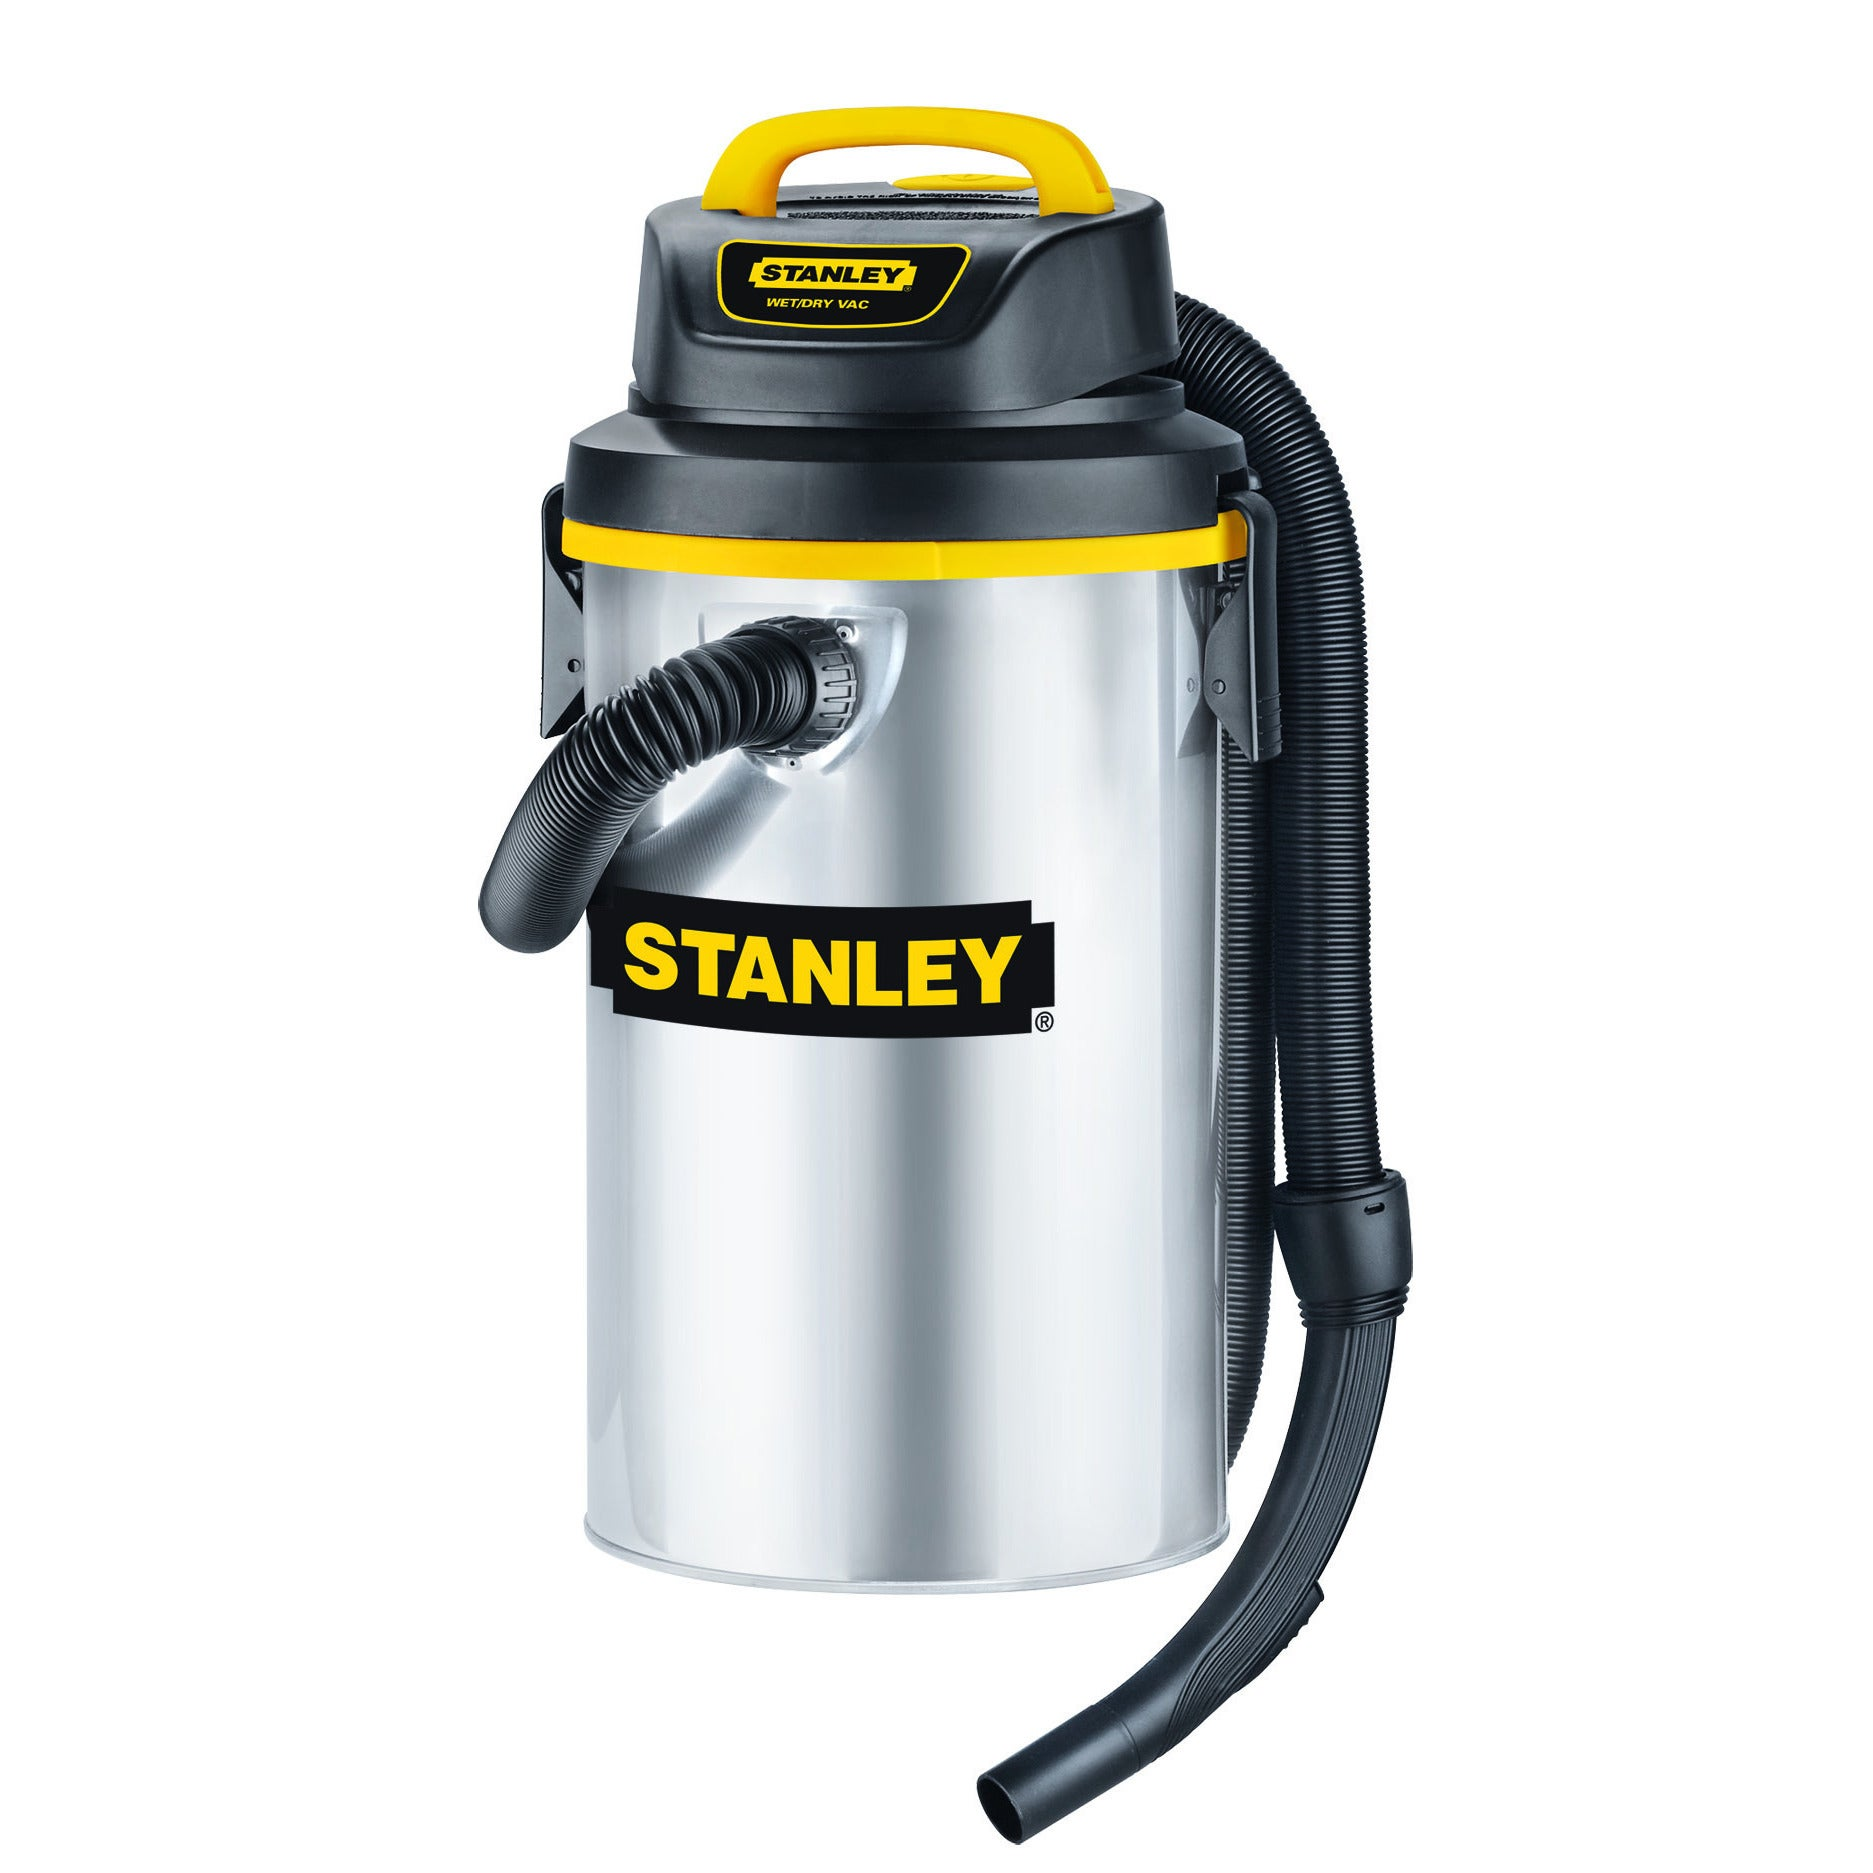 Stanley Stainless Steel Wet and Dry 3.5-gallon Vacuum at Sears.com